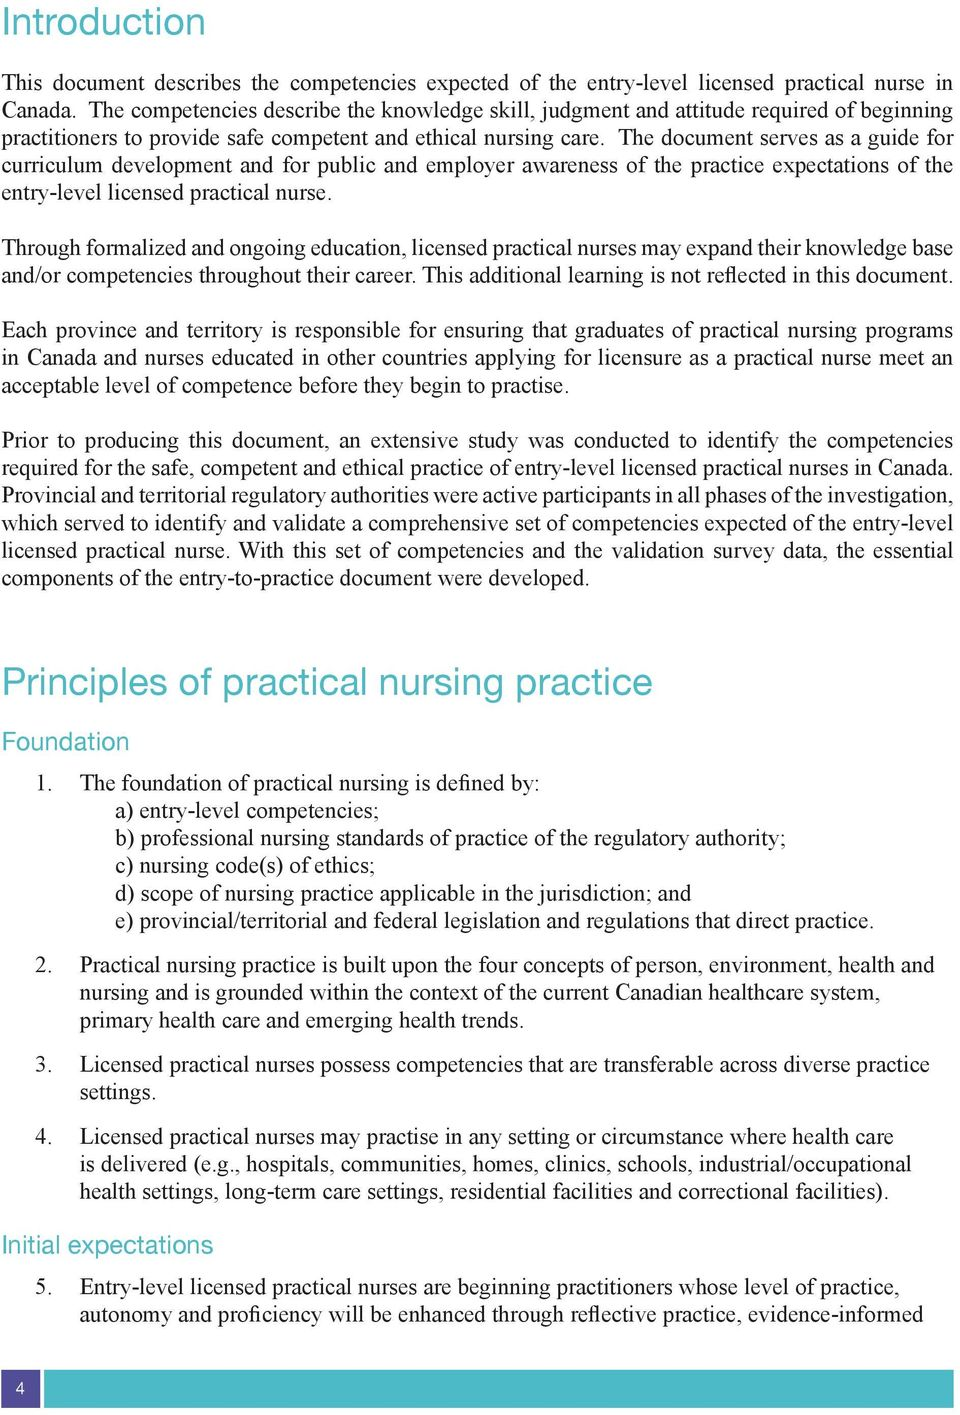 The document serves as a guide for curriculum development and for public and employer awareness of the practice expectations of the entry-level licensed practical nurse.